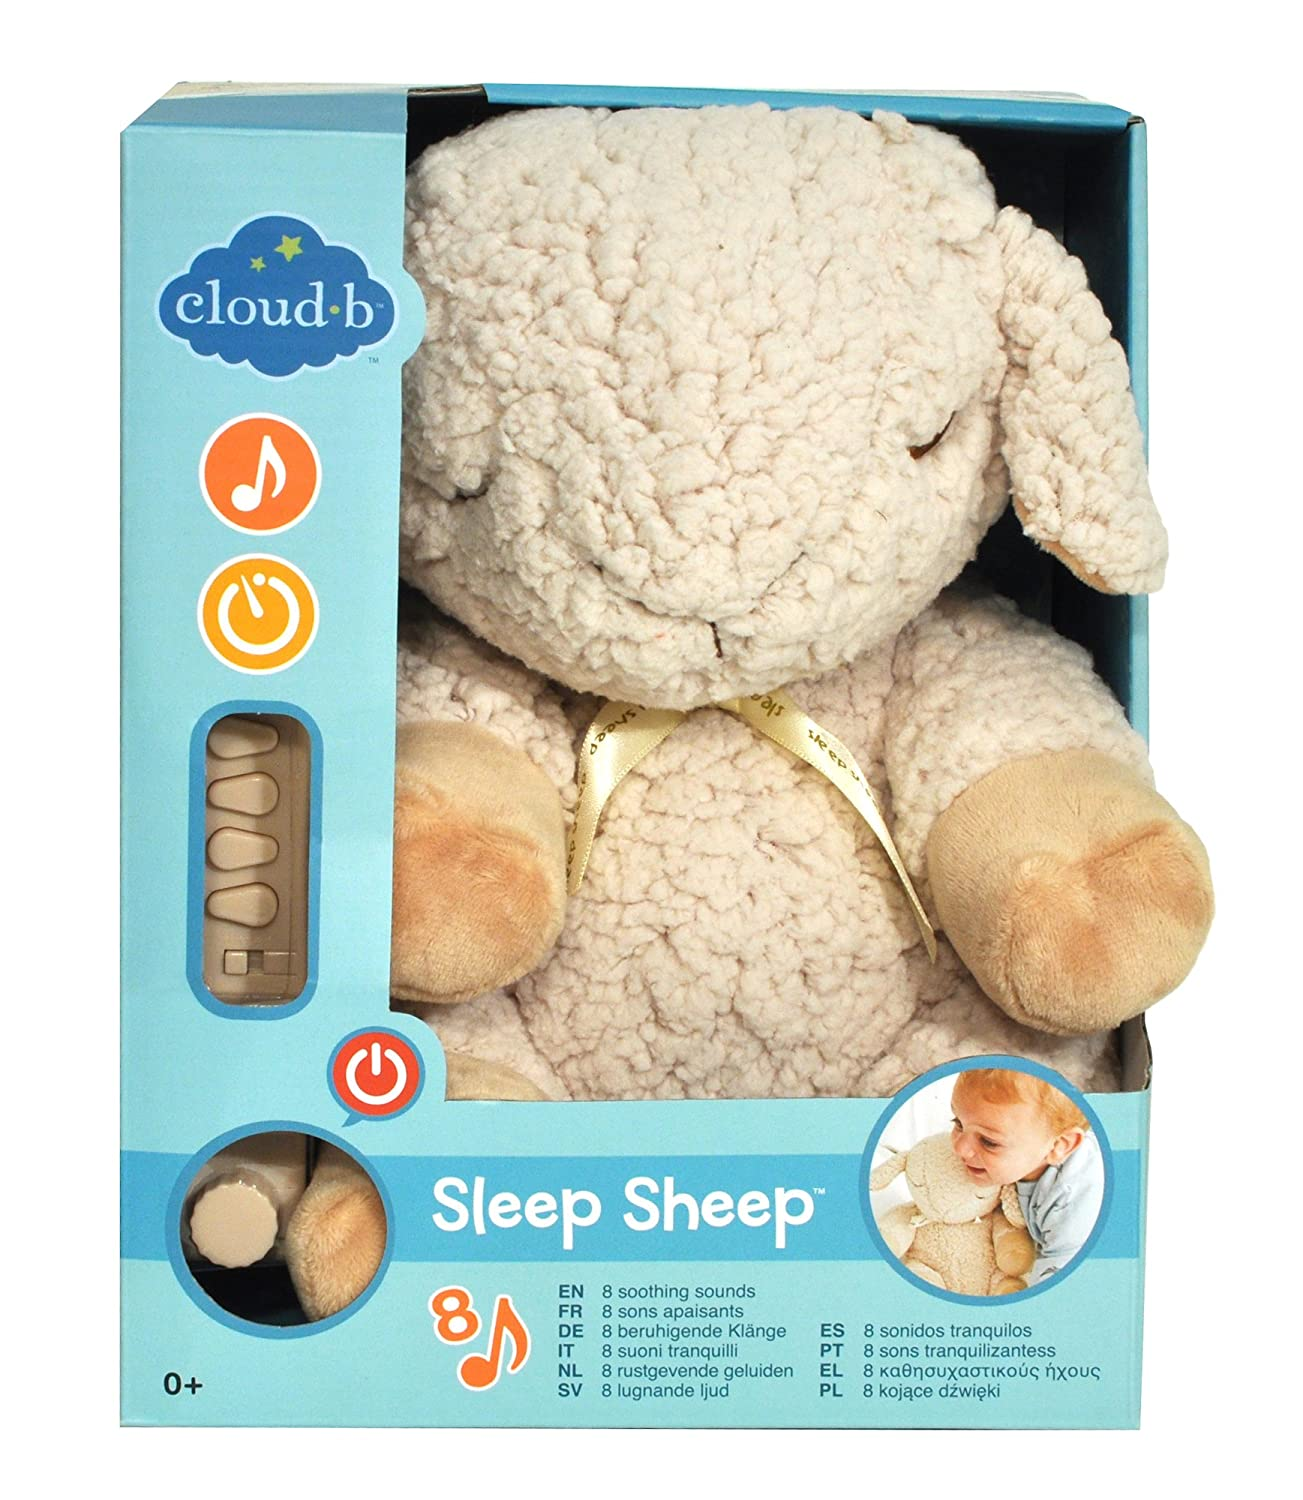 CloudB Sleep Sheep